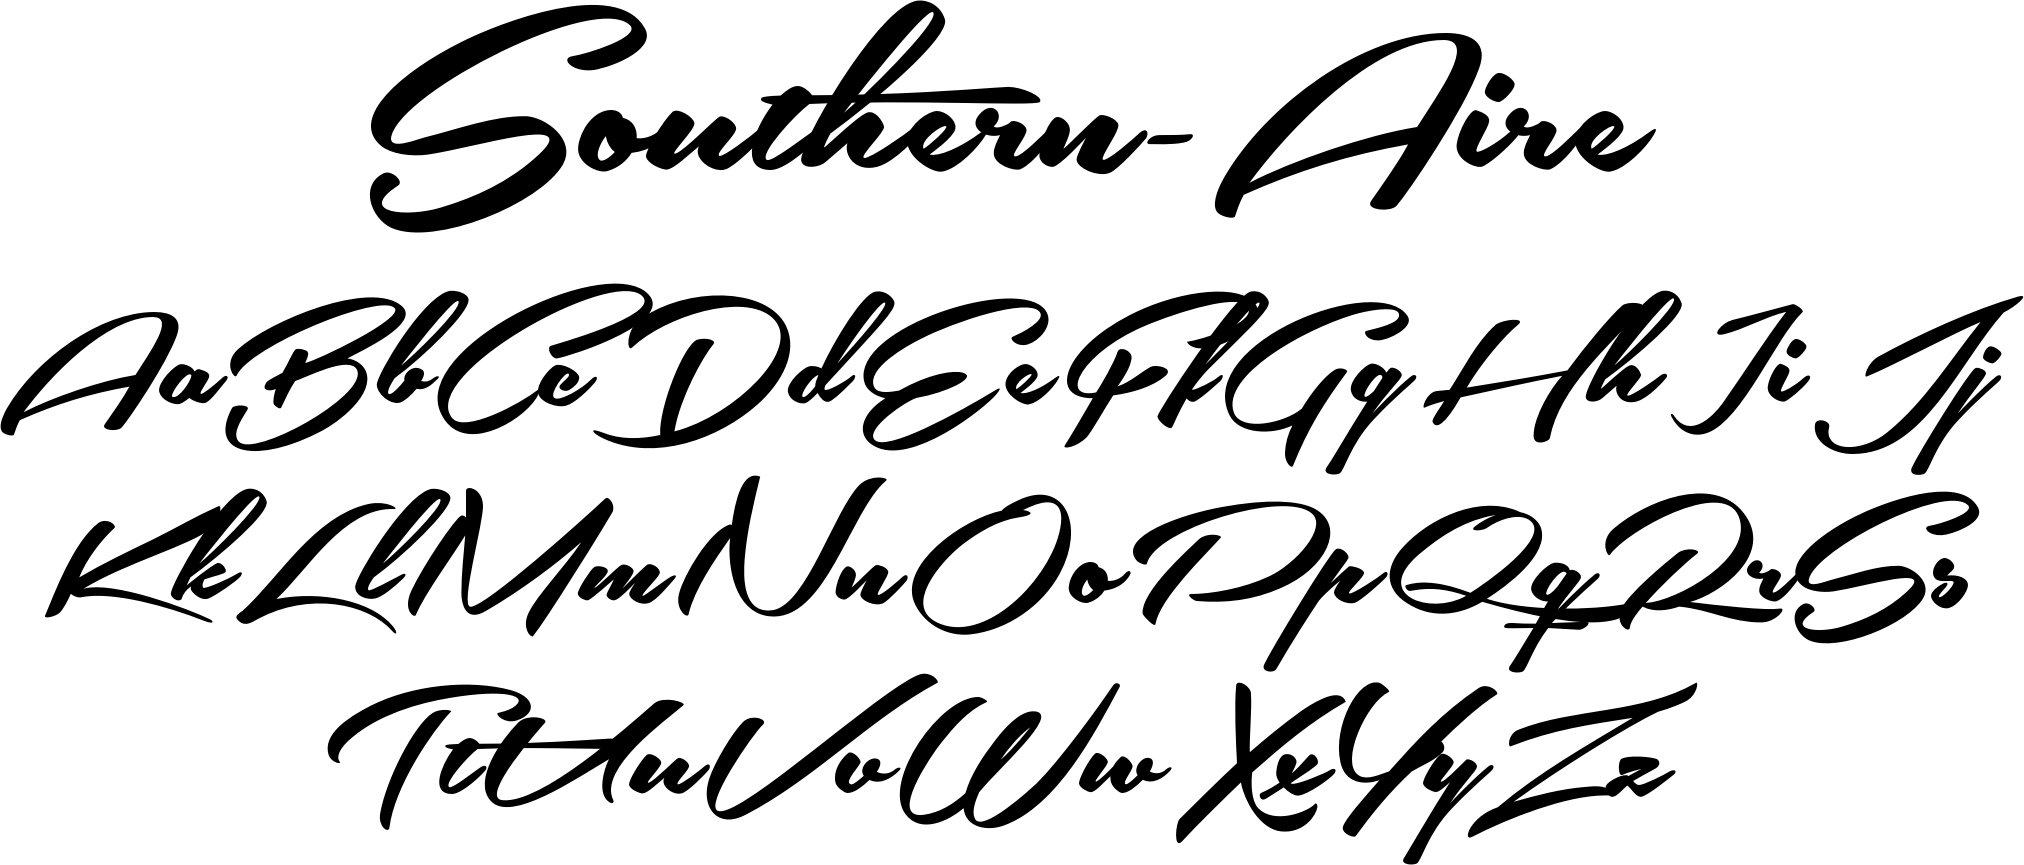 Southern Aire Font A Gorgeous Connecting Script That Evokes An Elegant Retro Feel